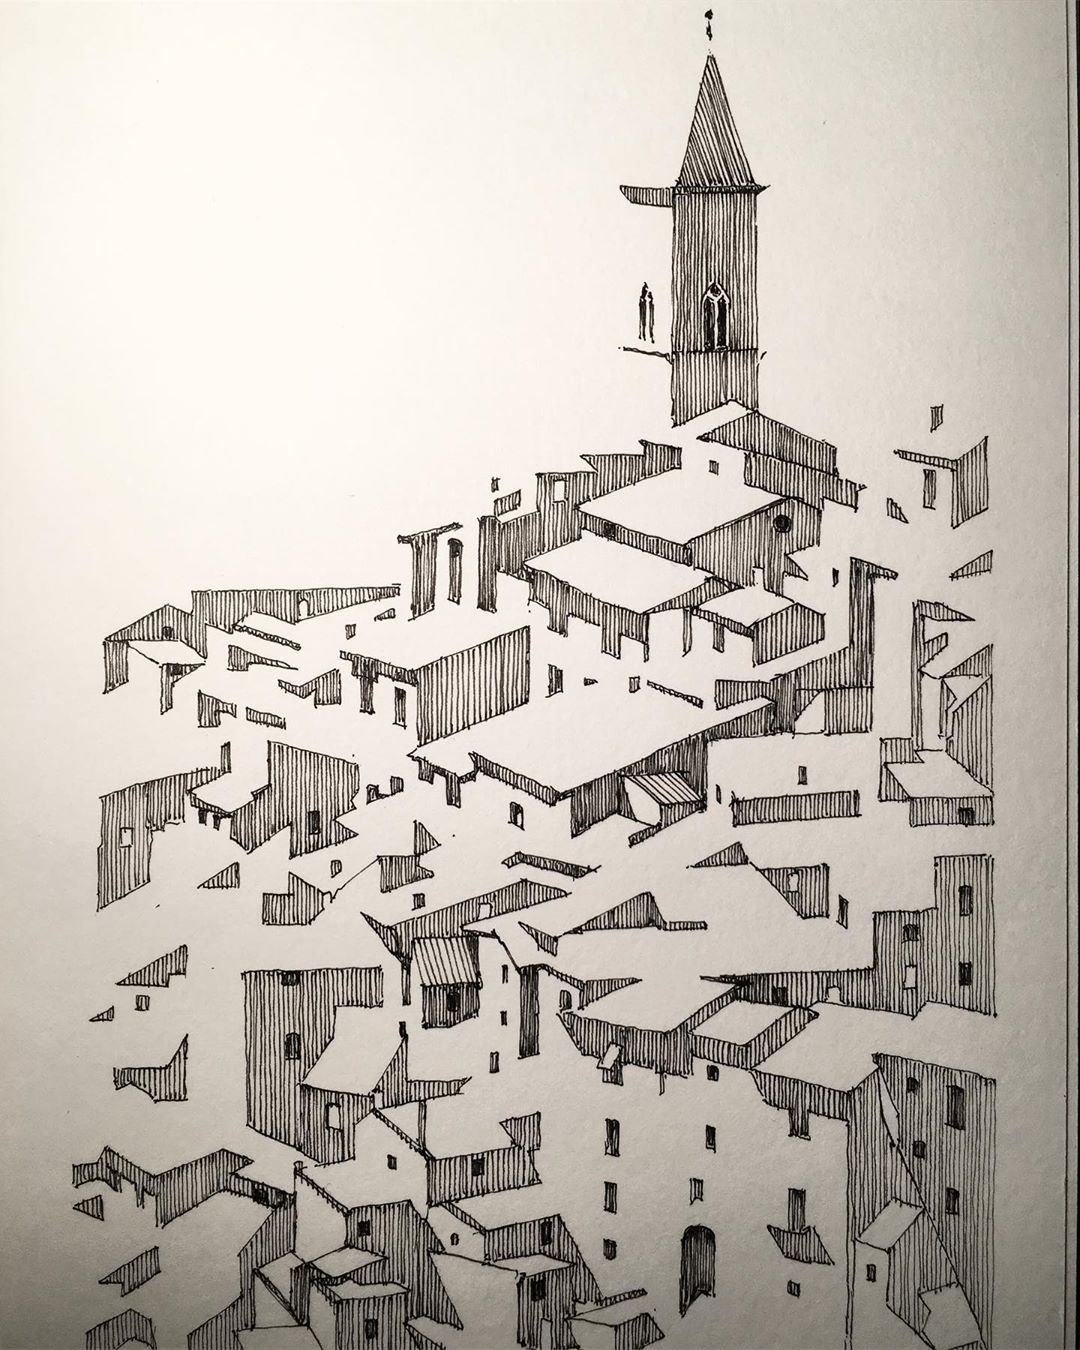 """Architecture in pen & ink on Instagram: """"Edging closer to abstraction. ✍🏼 #architecture #italy #village #citysketch #archisketcher #belltower #dailydrawing #architecturelovers…"""" - #abstraction #archisketcher #Architecture #architecturelovers #architektur #belltower #citysketch #closer #dailydrawing #Edging #ink #Instagram #italy #pen #village"""